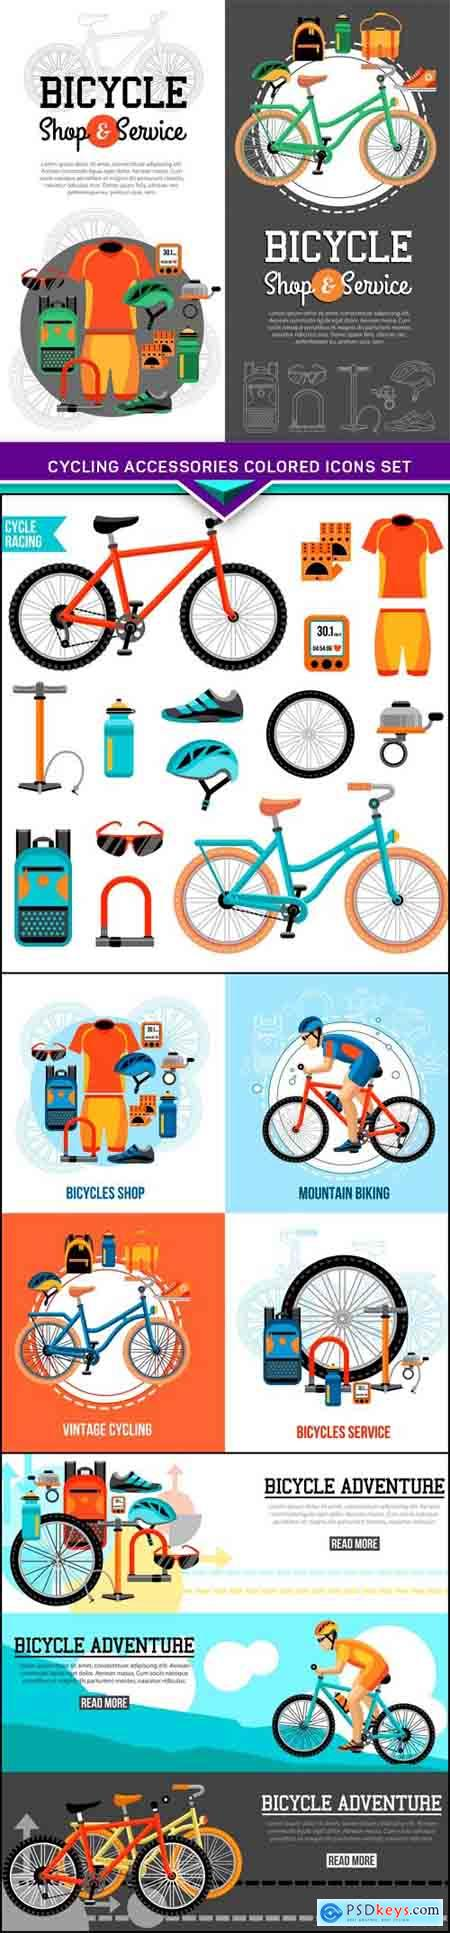 Cycling accessories colored icons set 4X EPS